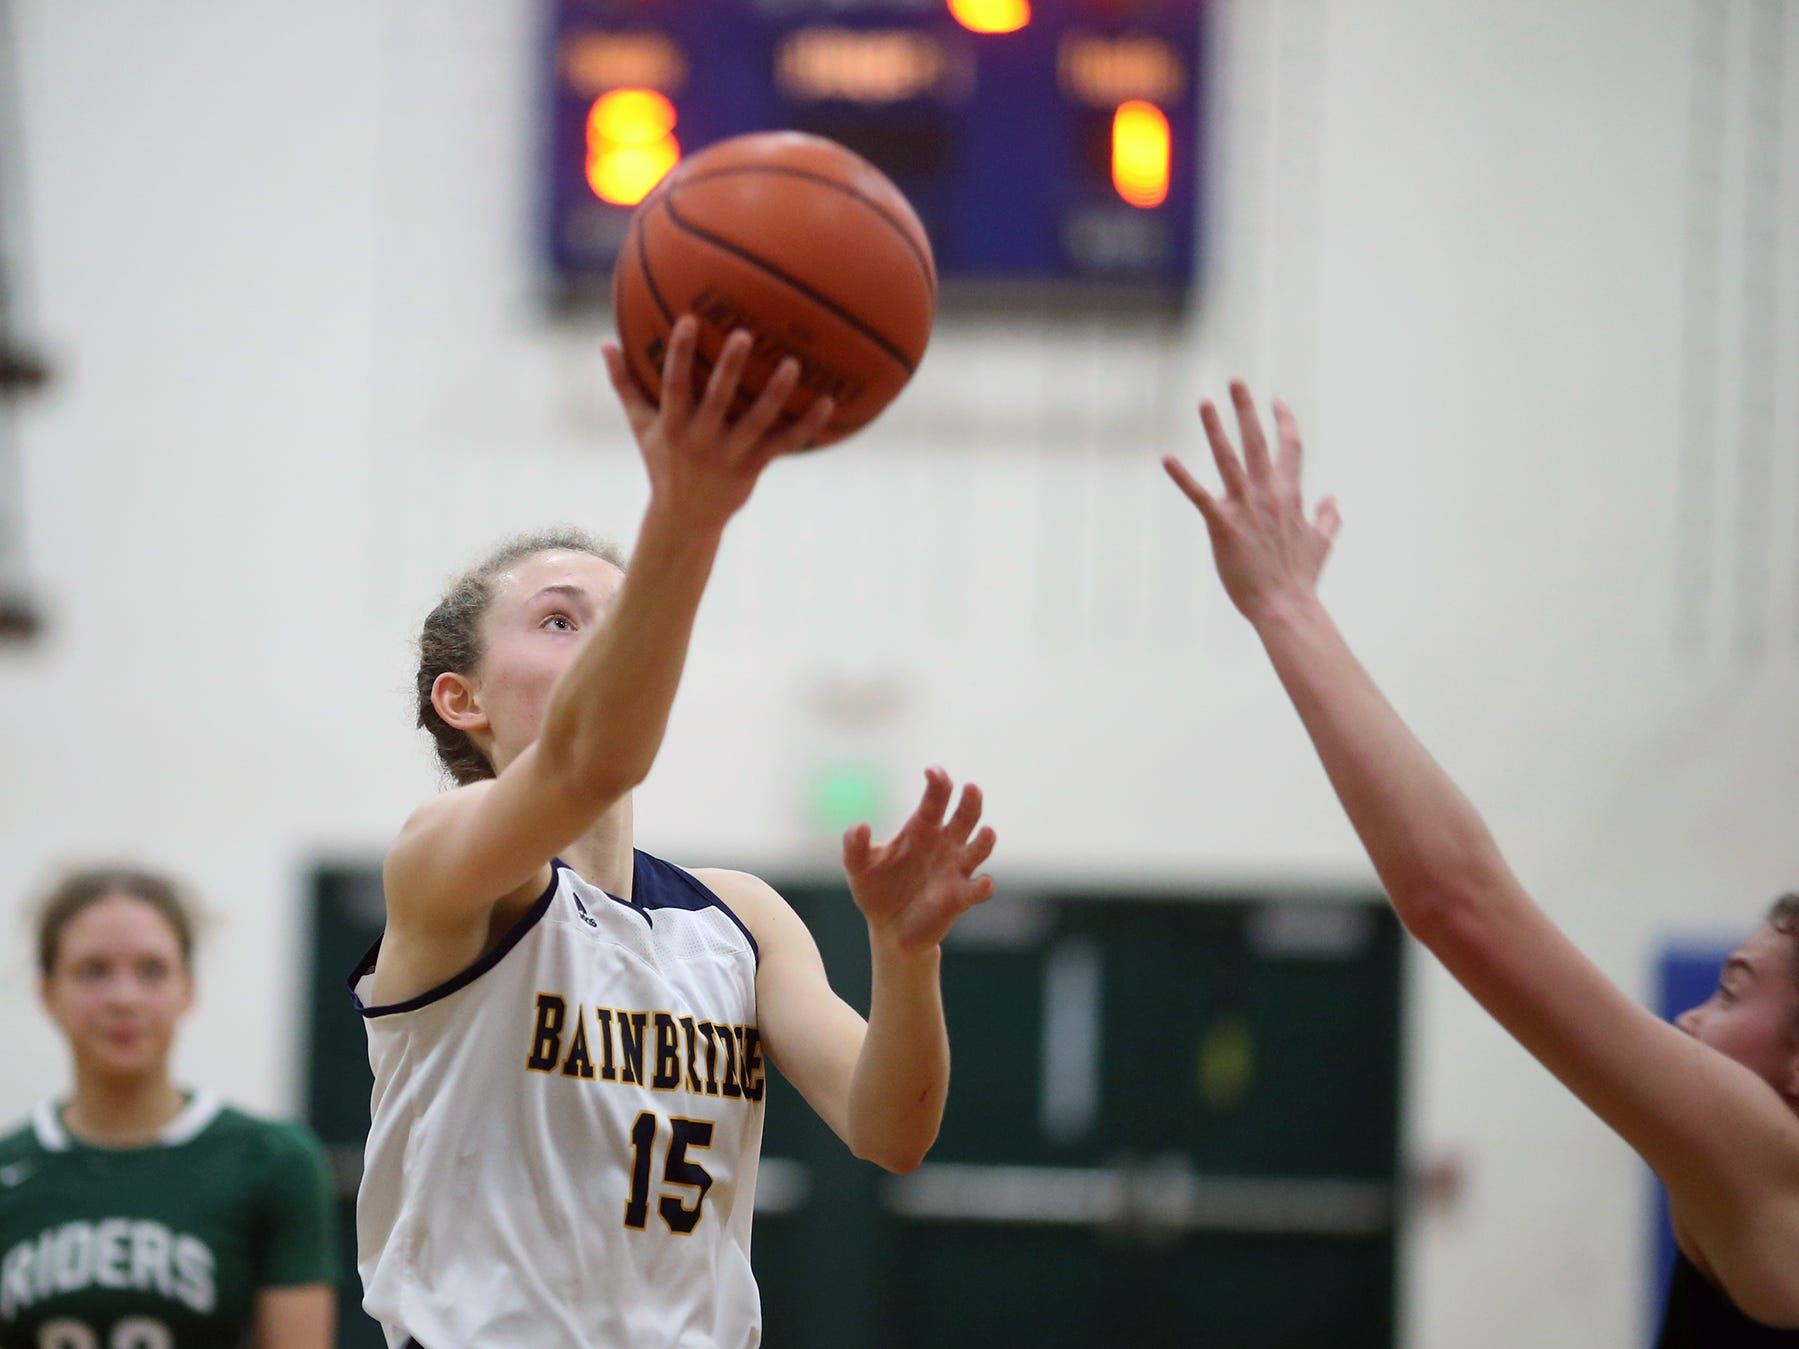 The Bainbridge girls basketball team played Port Angeles at Bainbridge, on Wednesday, Nov. 28, 2018. The Bainbridge girls basketball team played Port Angeles at Bainbridge, on Wednesday, Nov. 28, 2018. Bainbridge player Olivia Wikstrom drives to the hoops  past a Port Angeles defender .